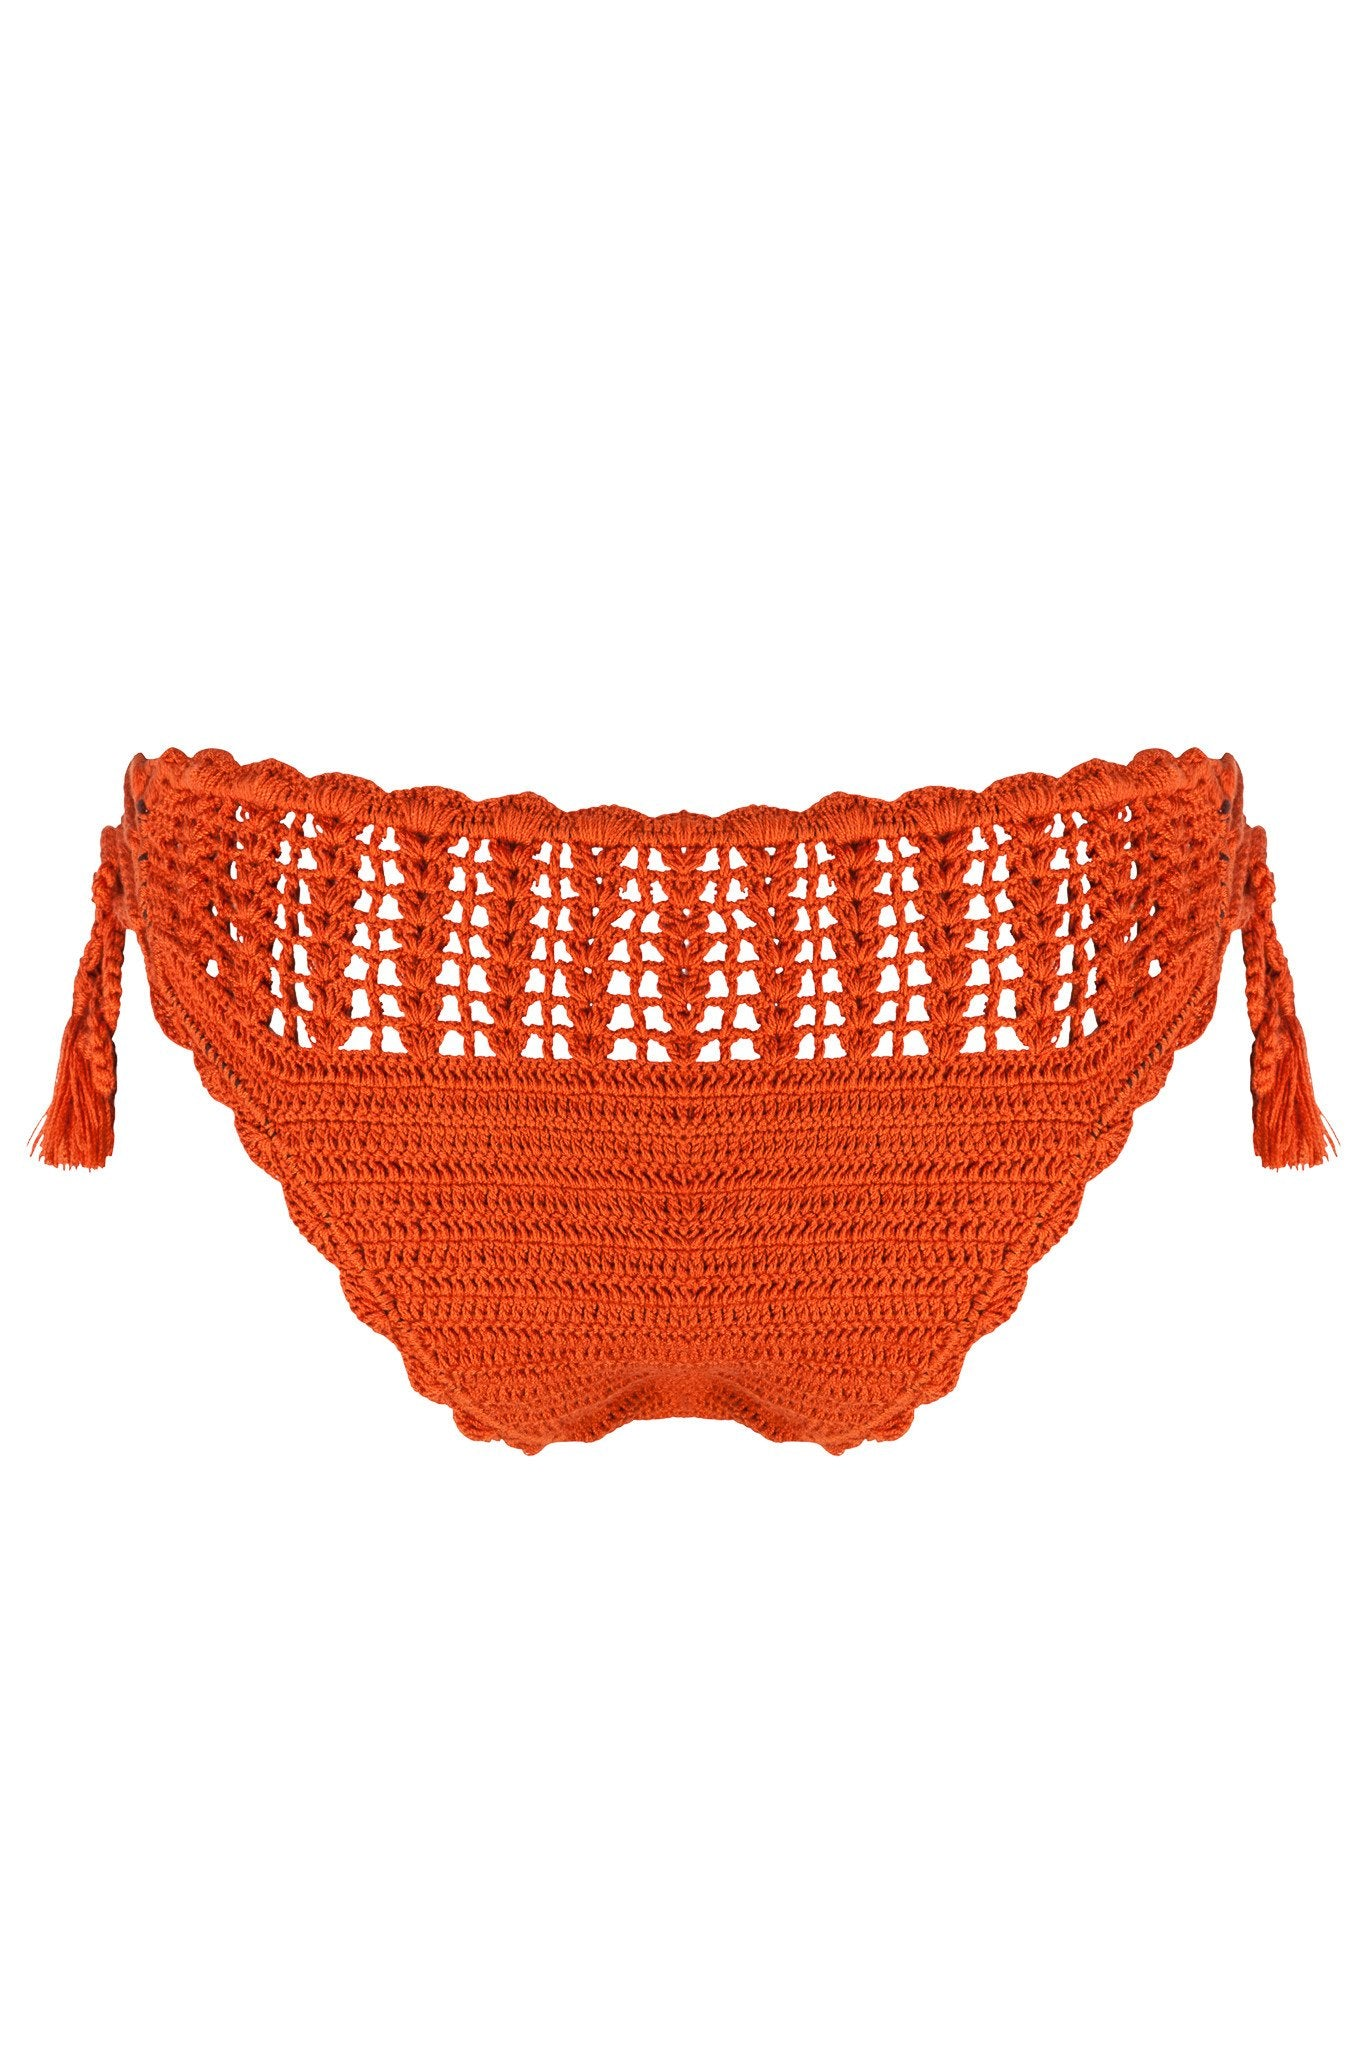 Lace-Up Crochet Bottom | Marrakech - Bikini Bottom by Mer Culture Swimwear Hong Kong